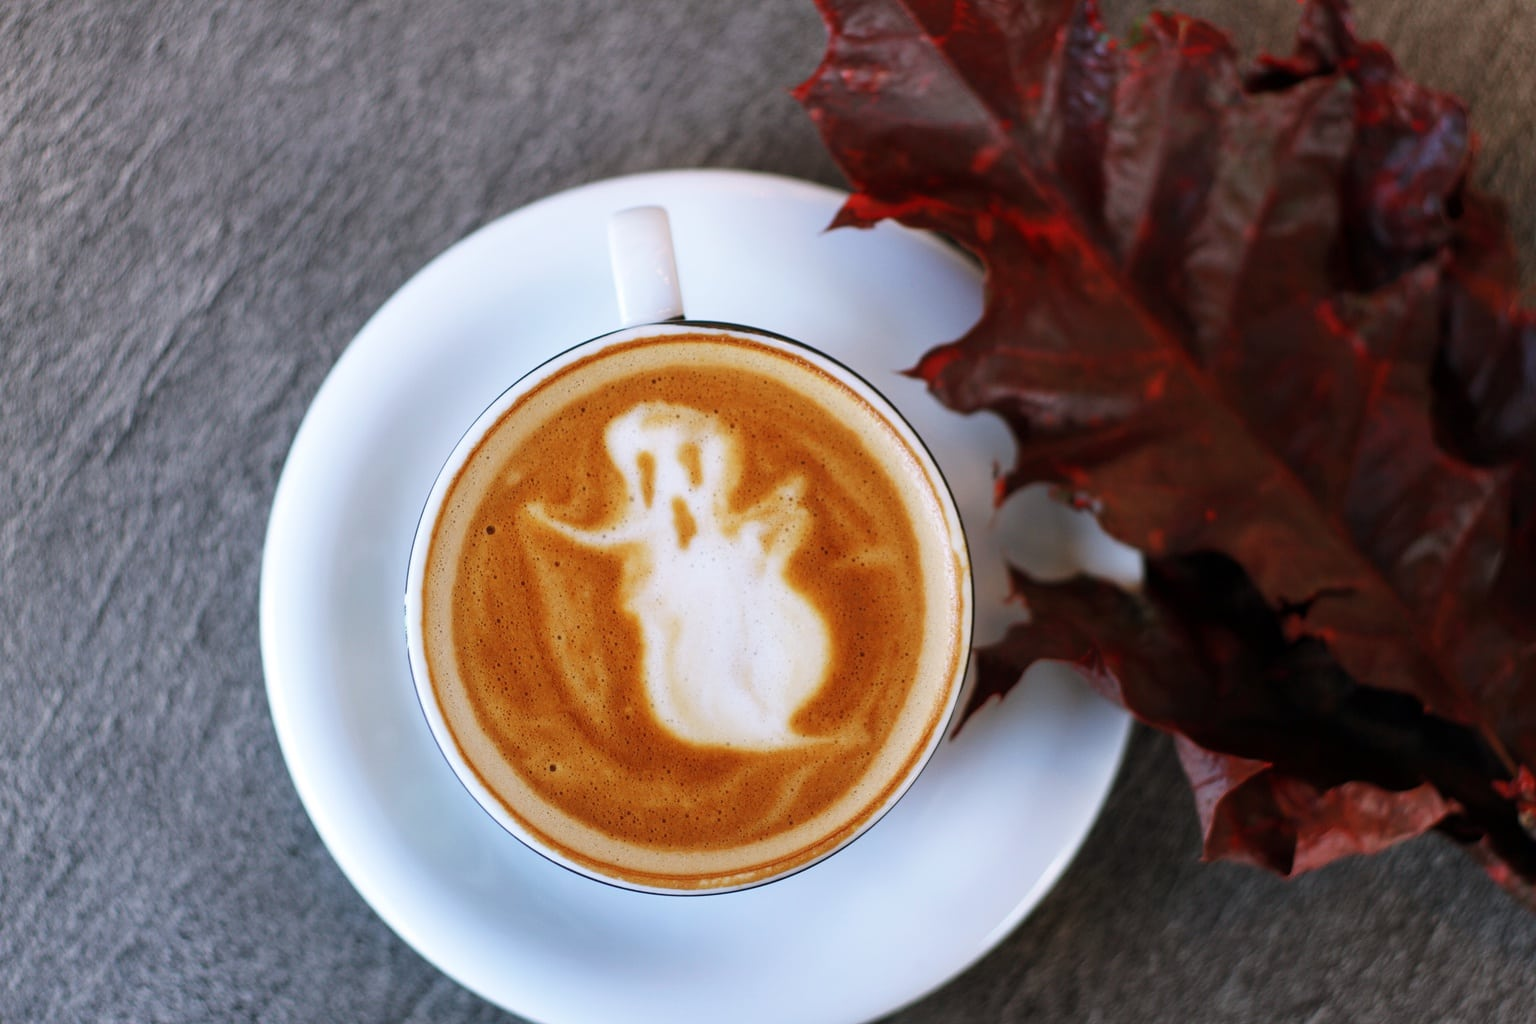 Ghost latte art with leaf